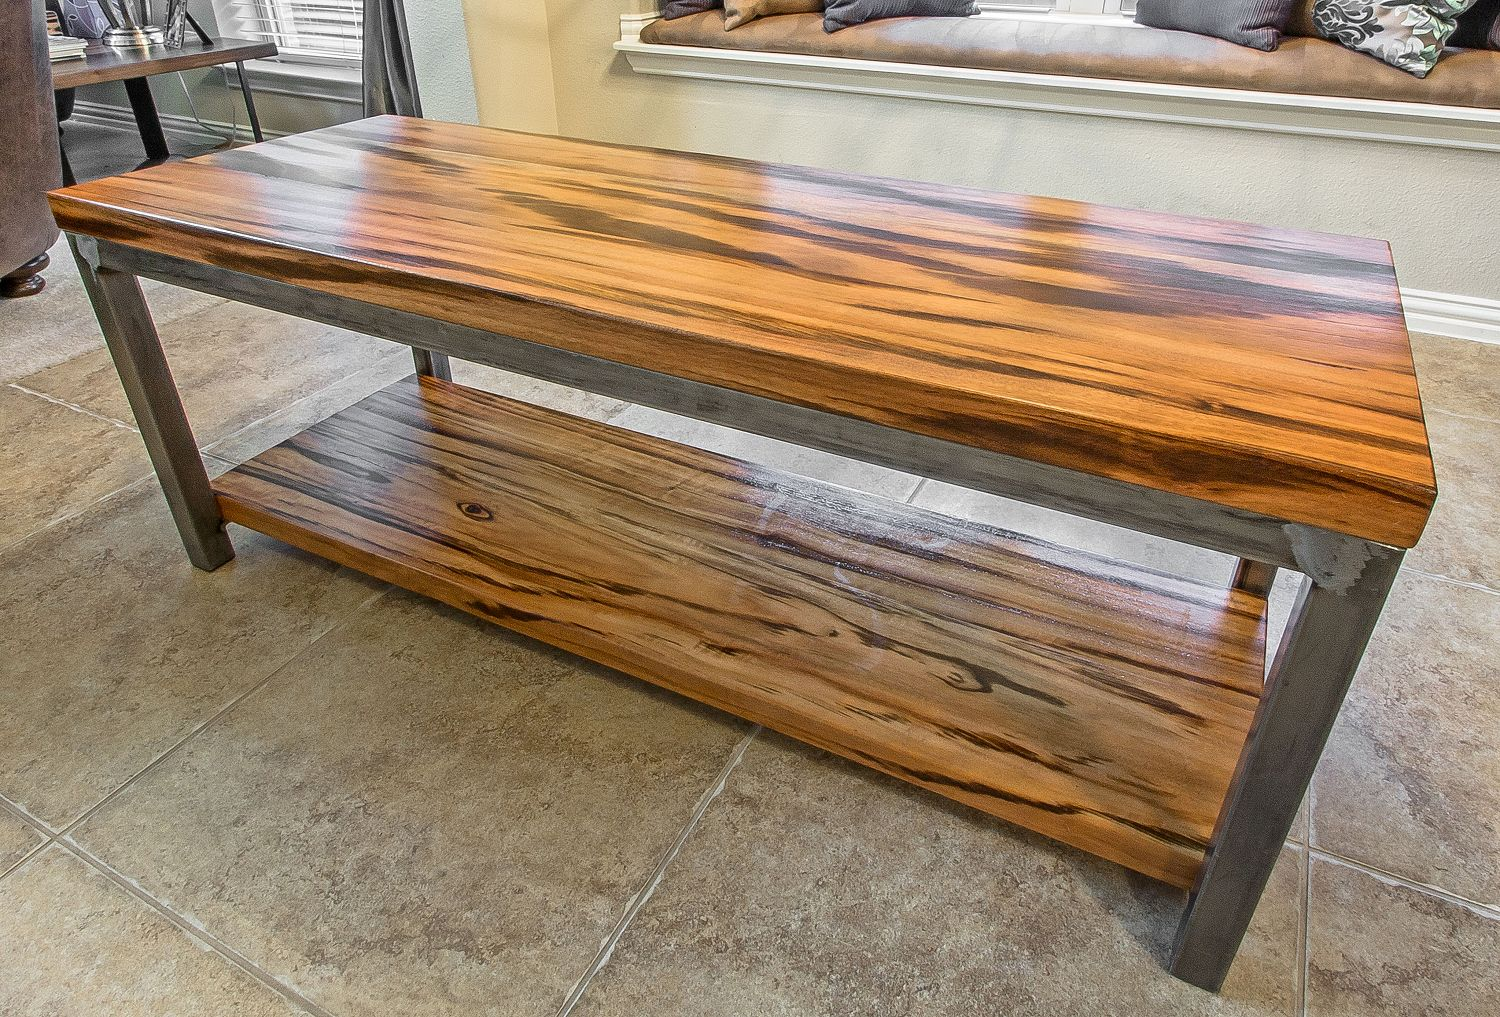 Tigerwood solid hardwood tables furniture for Hardwood furniture